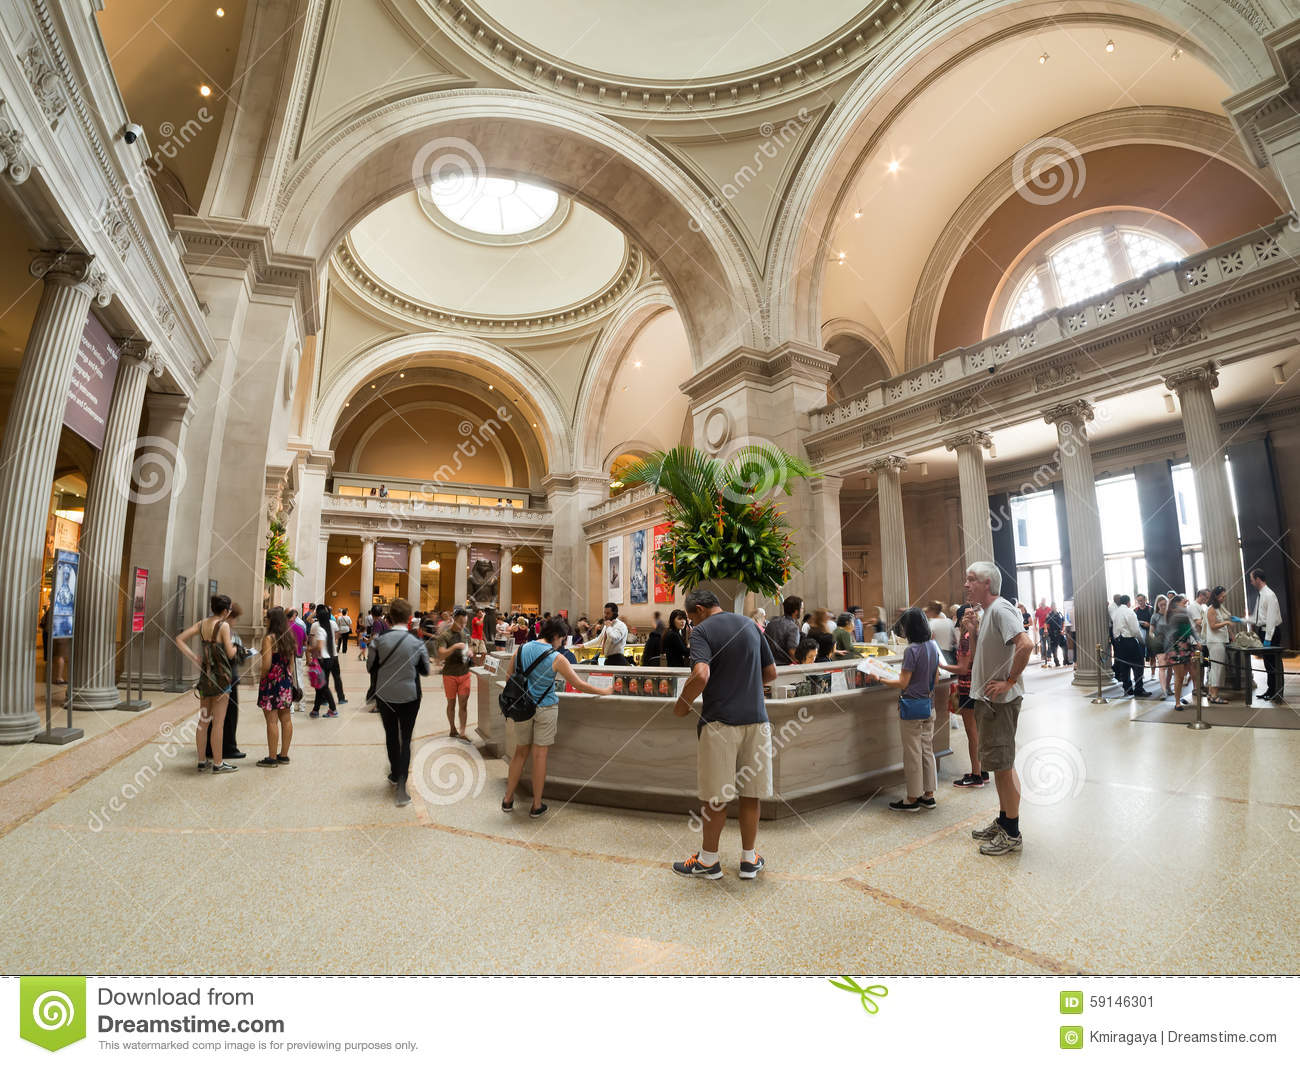 Interior of the metropolitan museum of art in new york for Metropolitan museum of art in new york